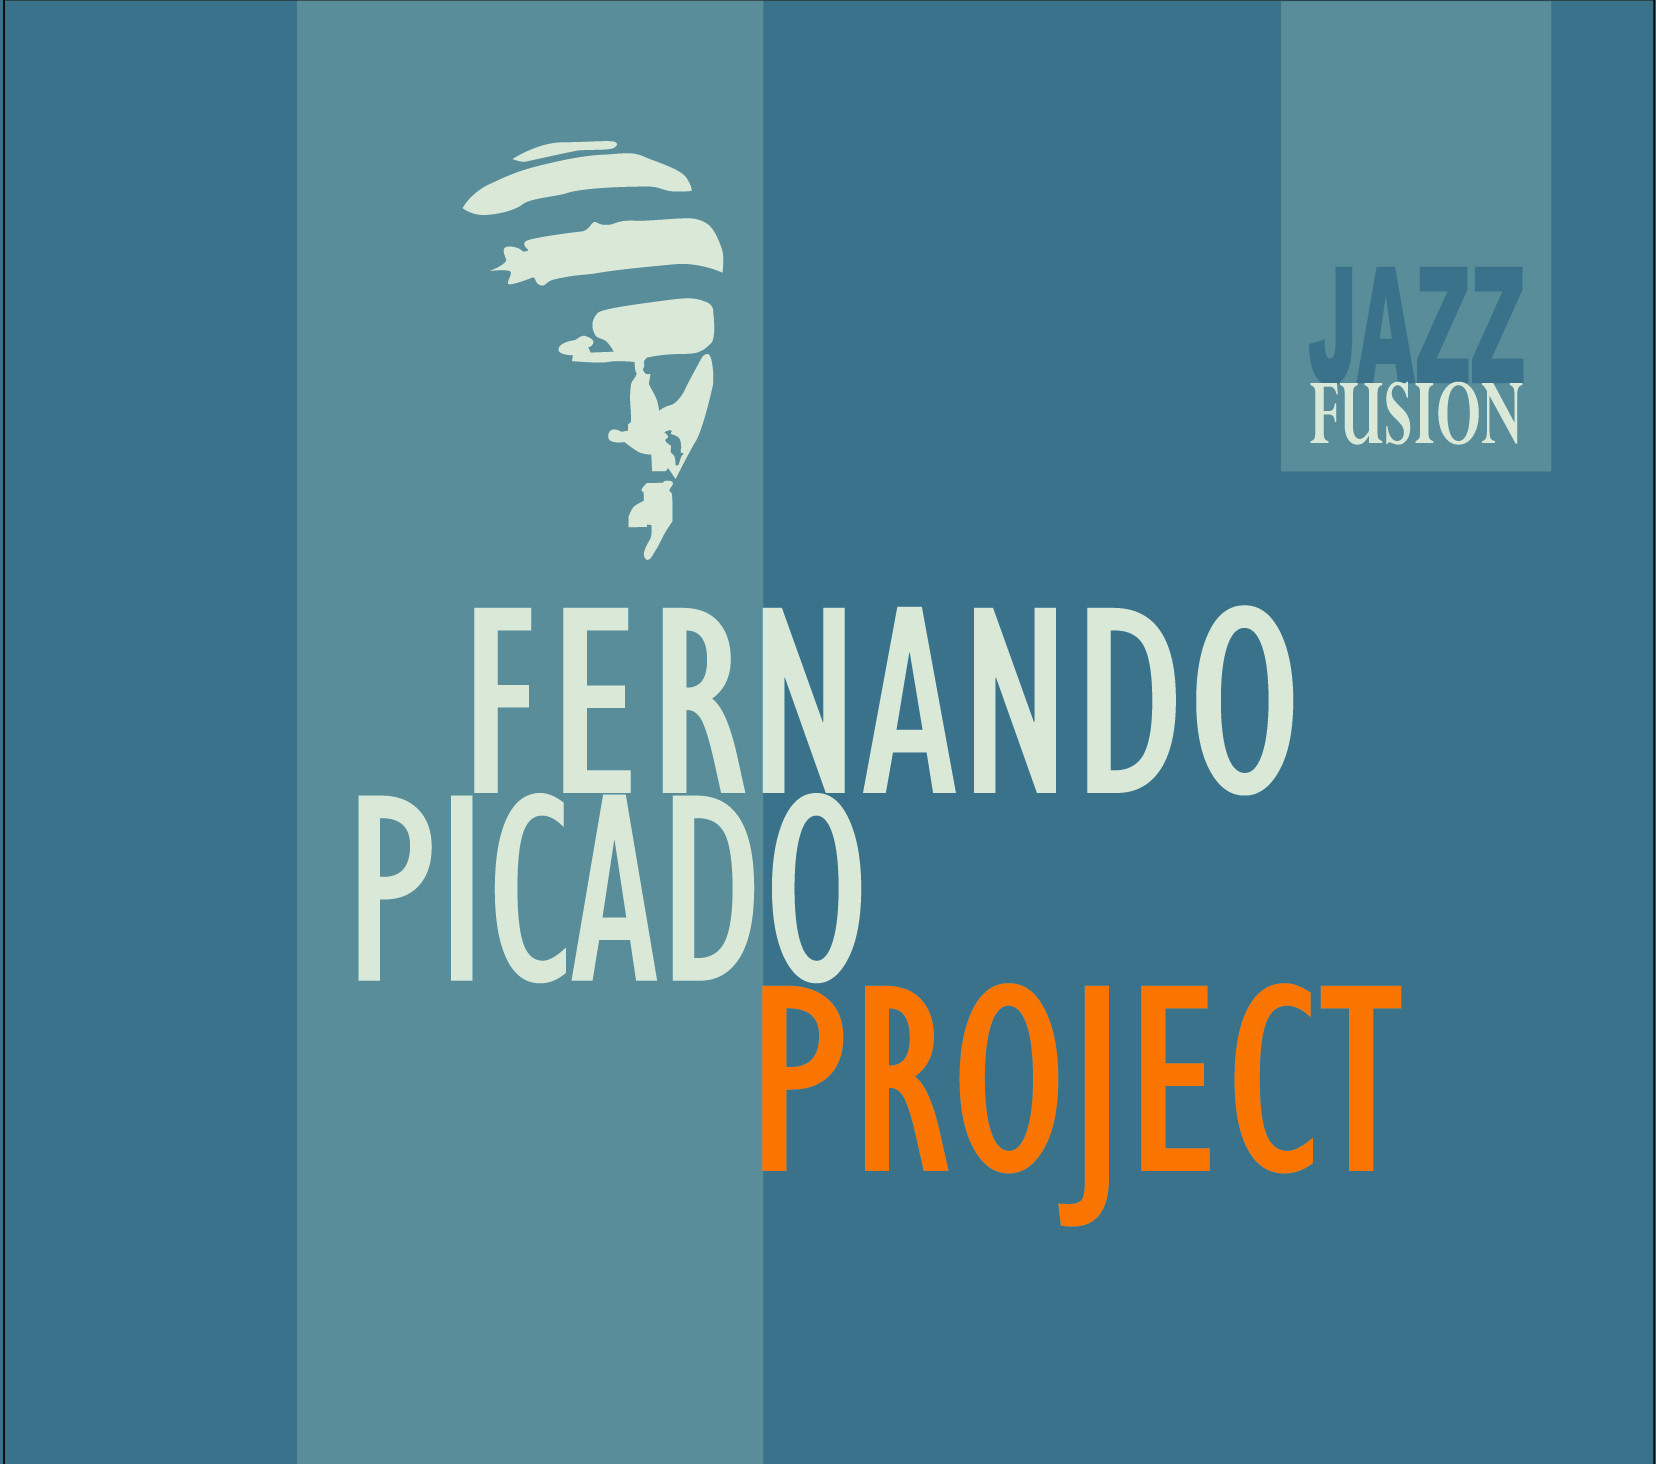 FERNANDO PICADO PROJECT